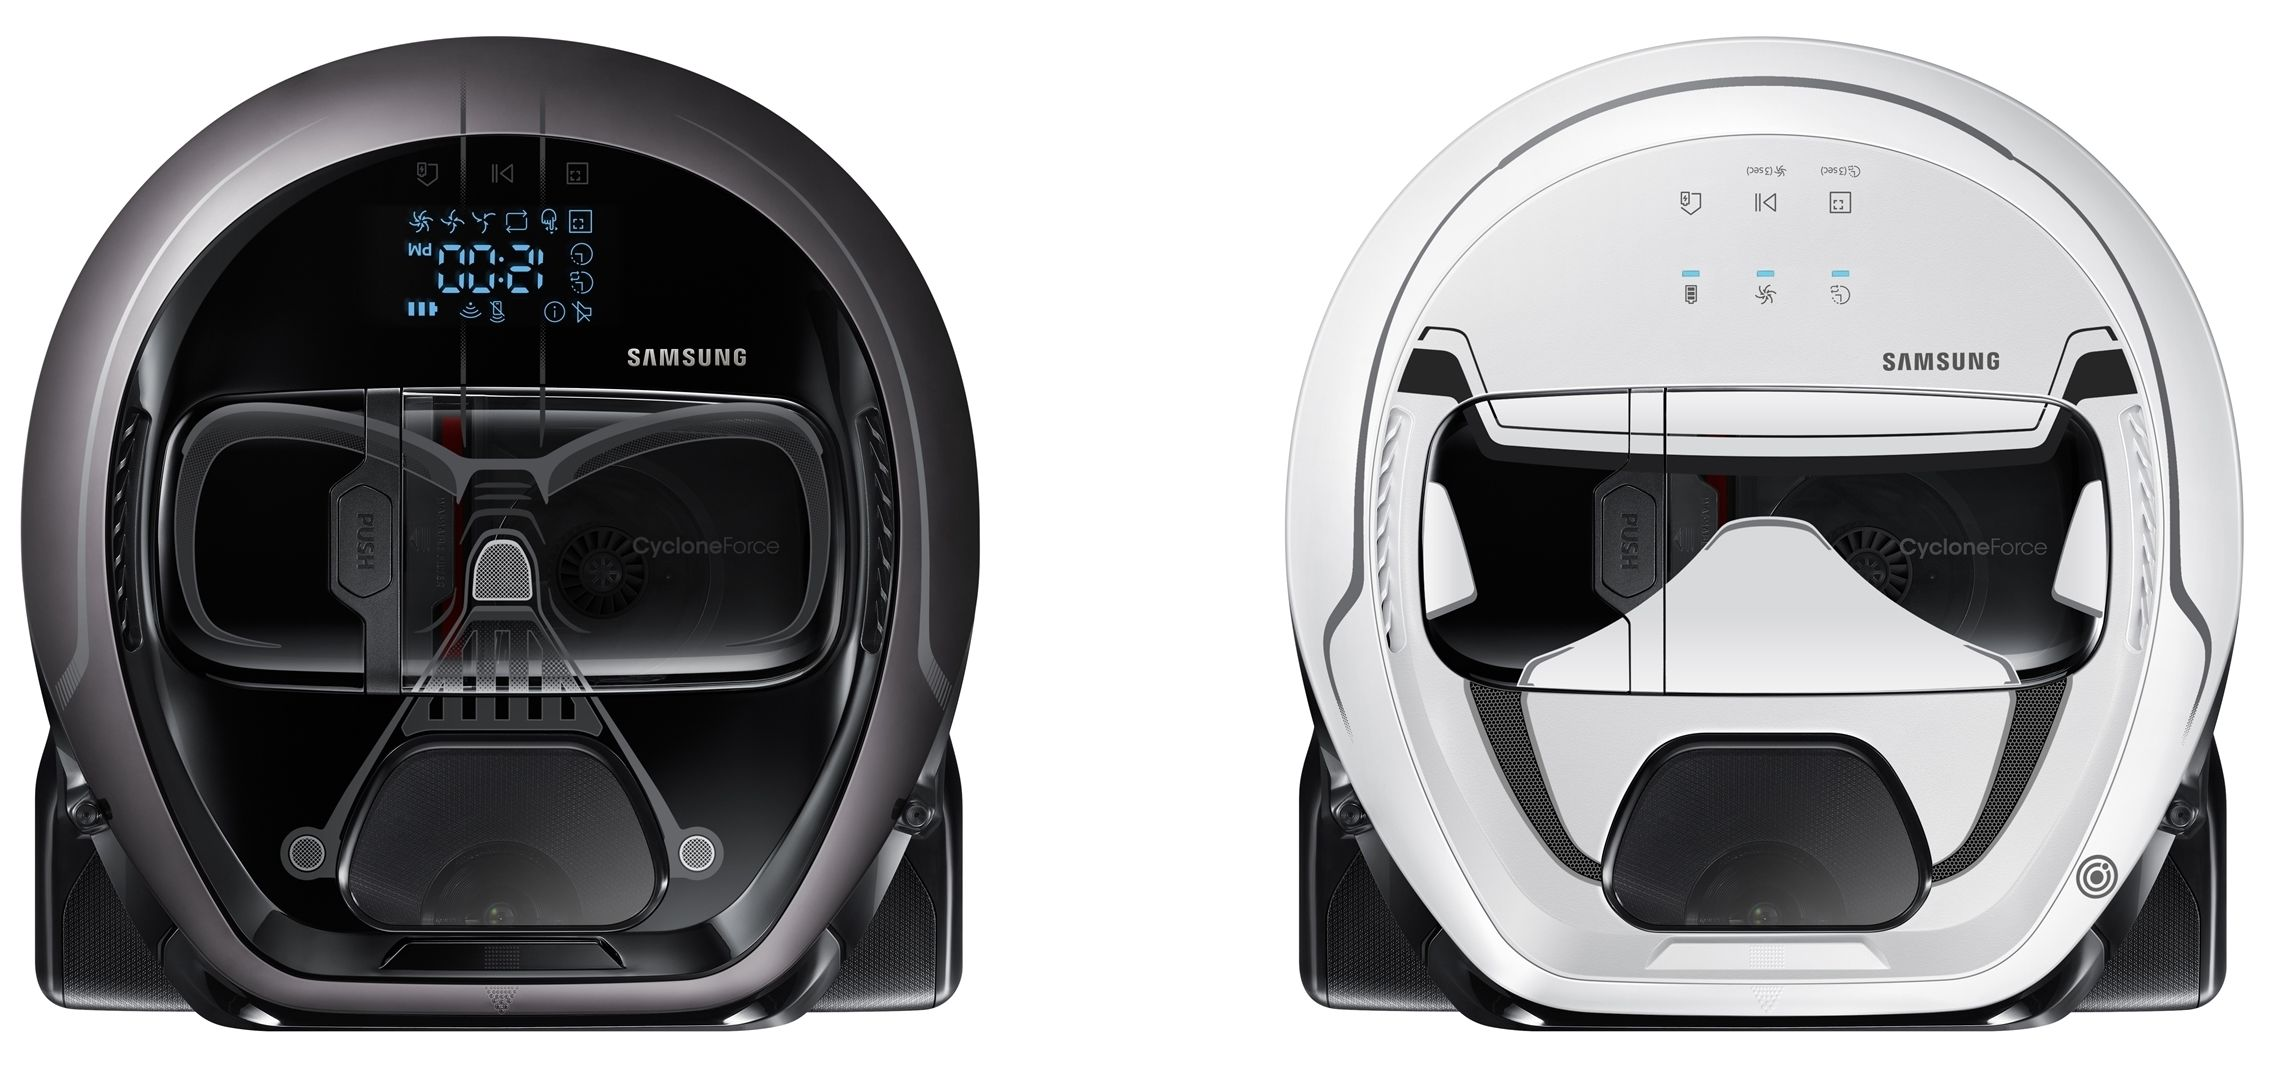 Samsung will release smart vacuum cleaner in the style of Star Wars